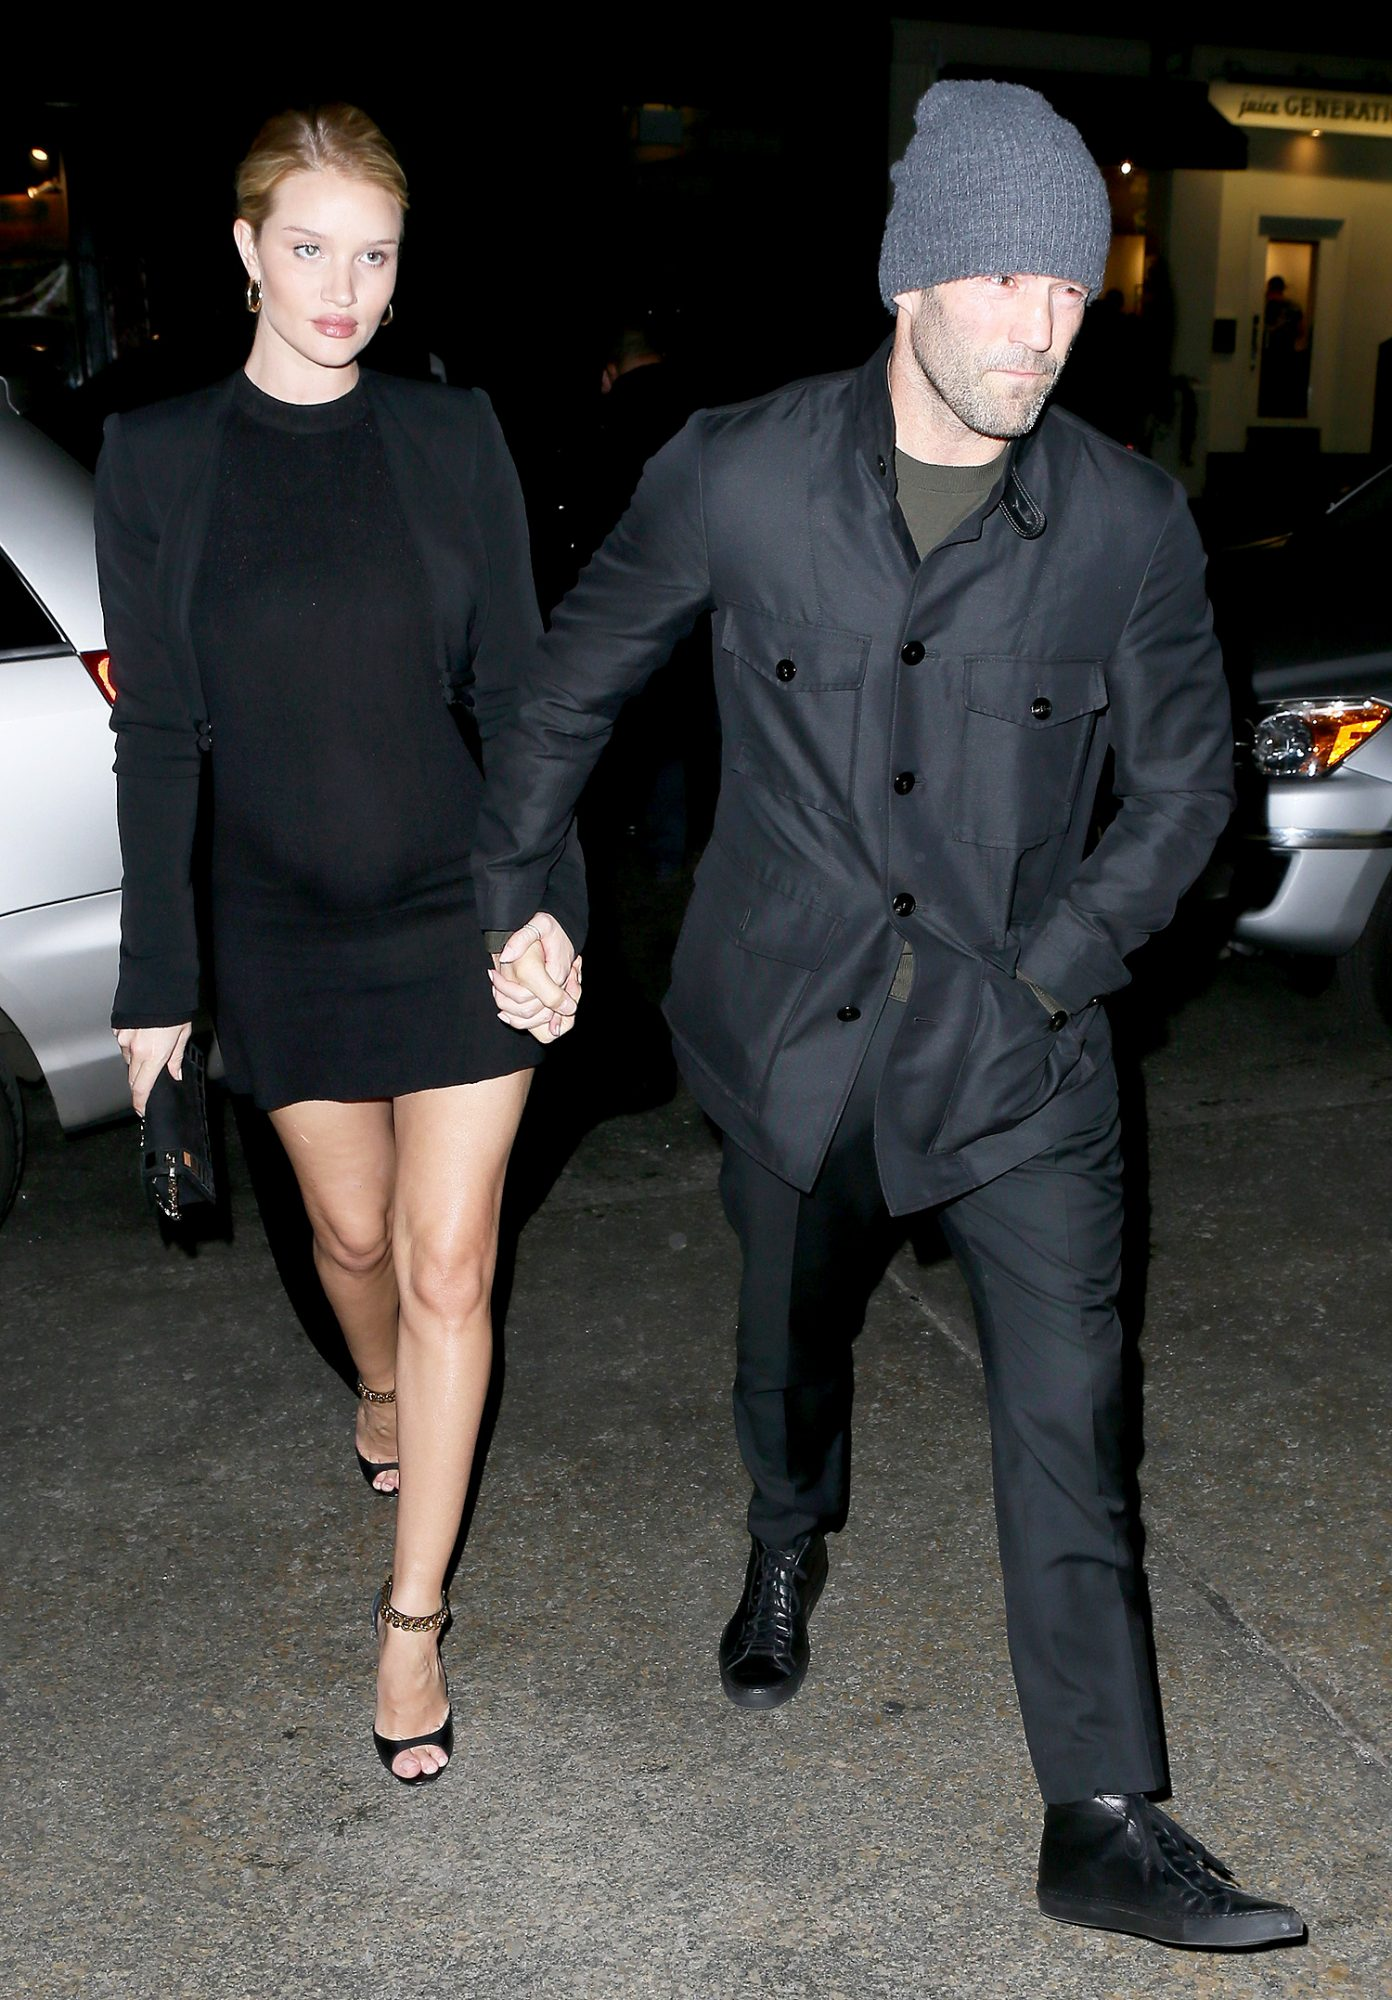 Rosie Huntington-Whiteley and fiancé Jason Statham have dinner with his family